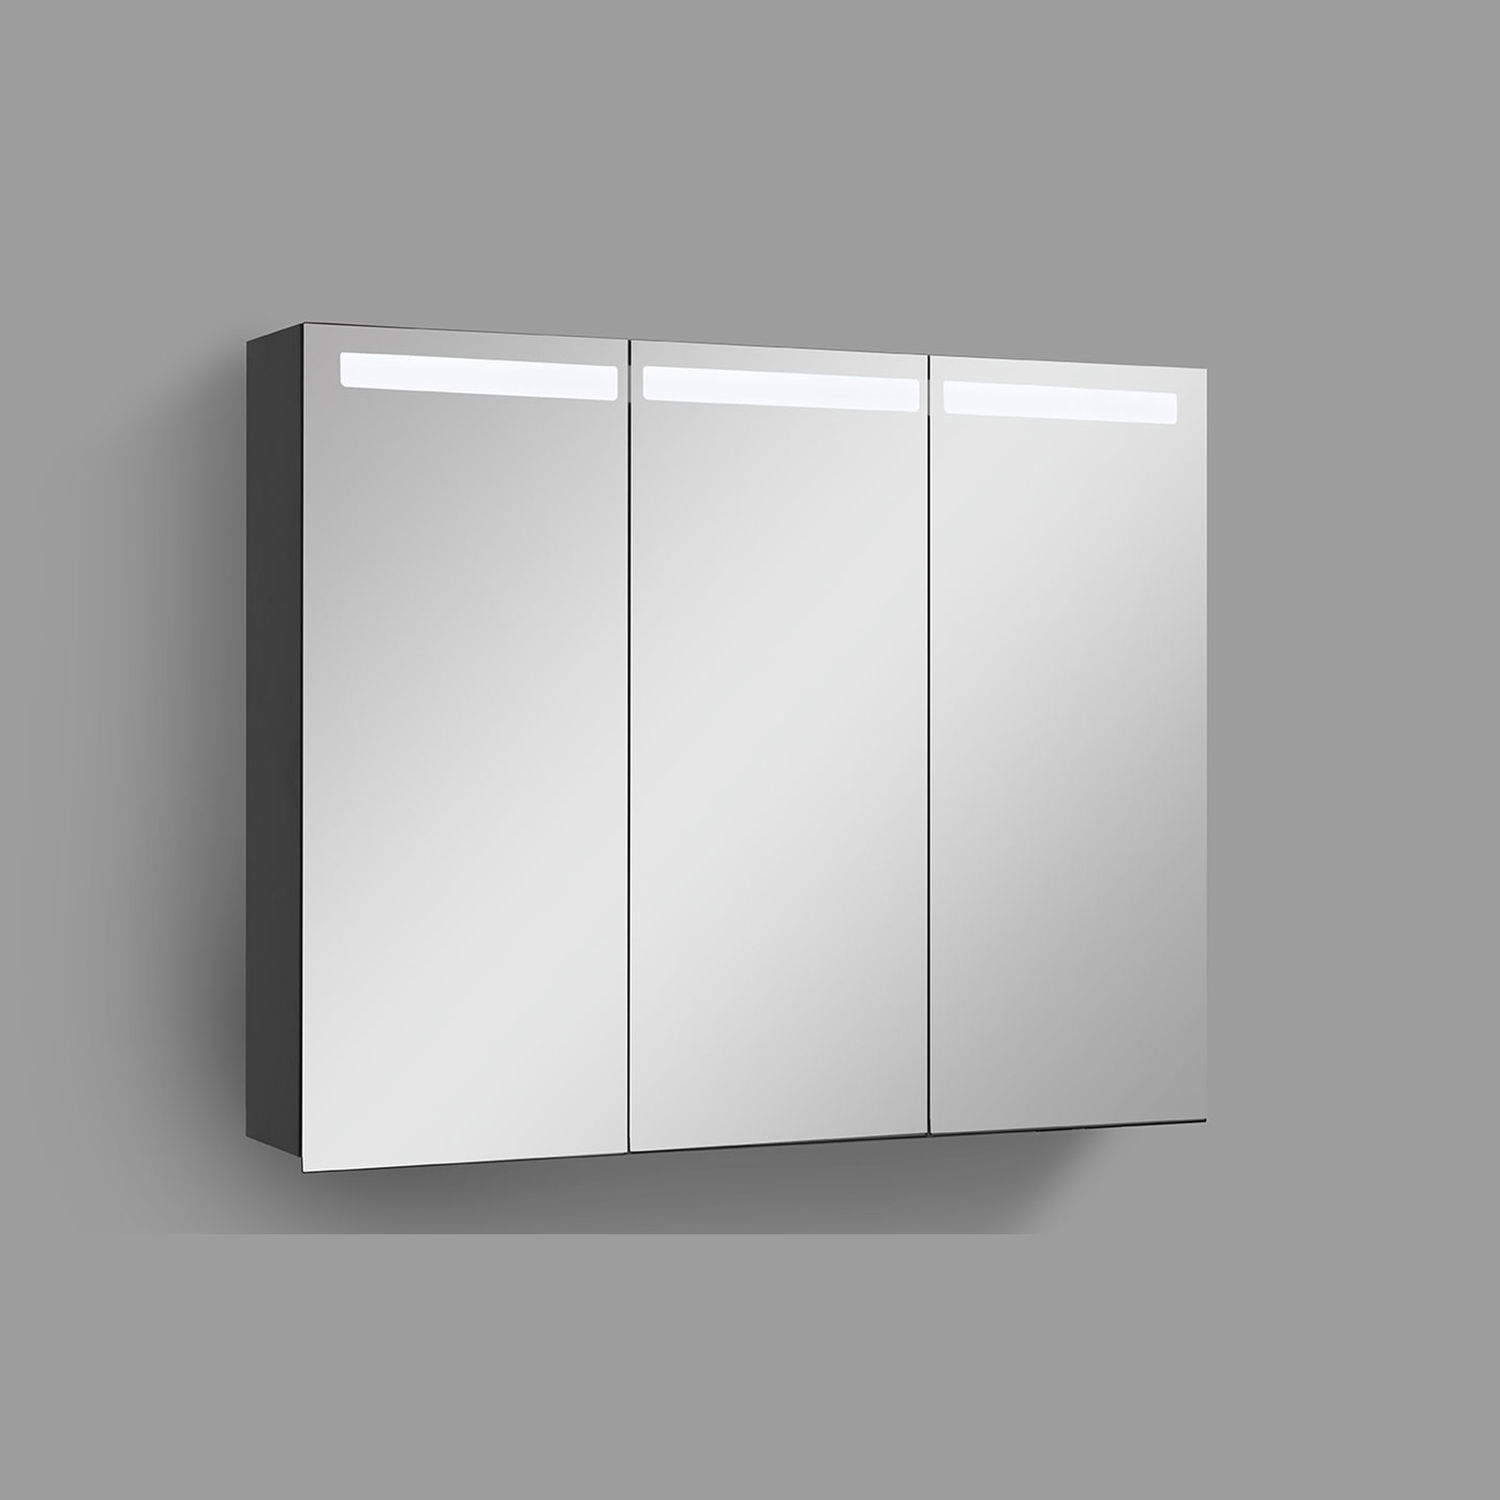 Mirrored bathroom wall cabinet - BOX - ARTELINEA